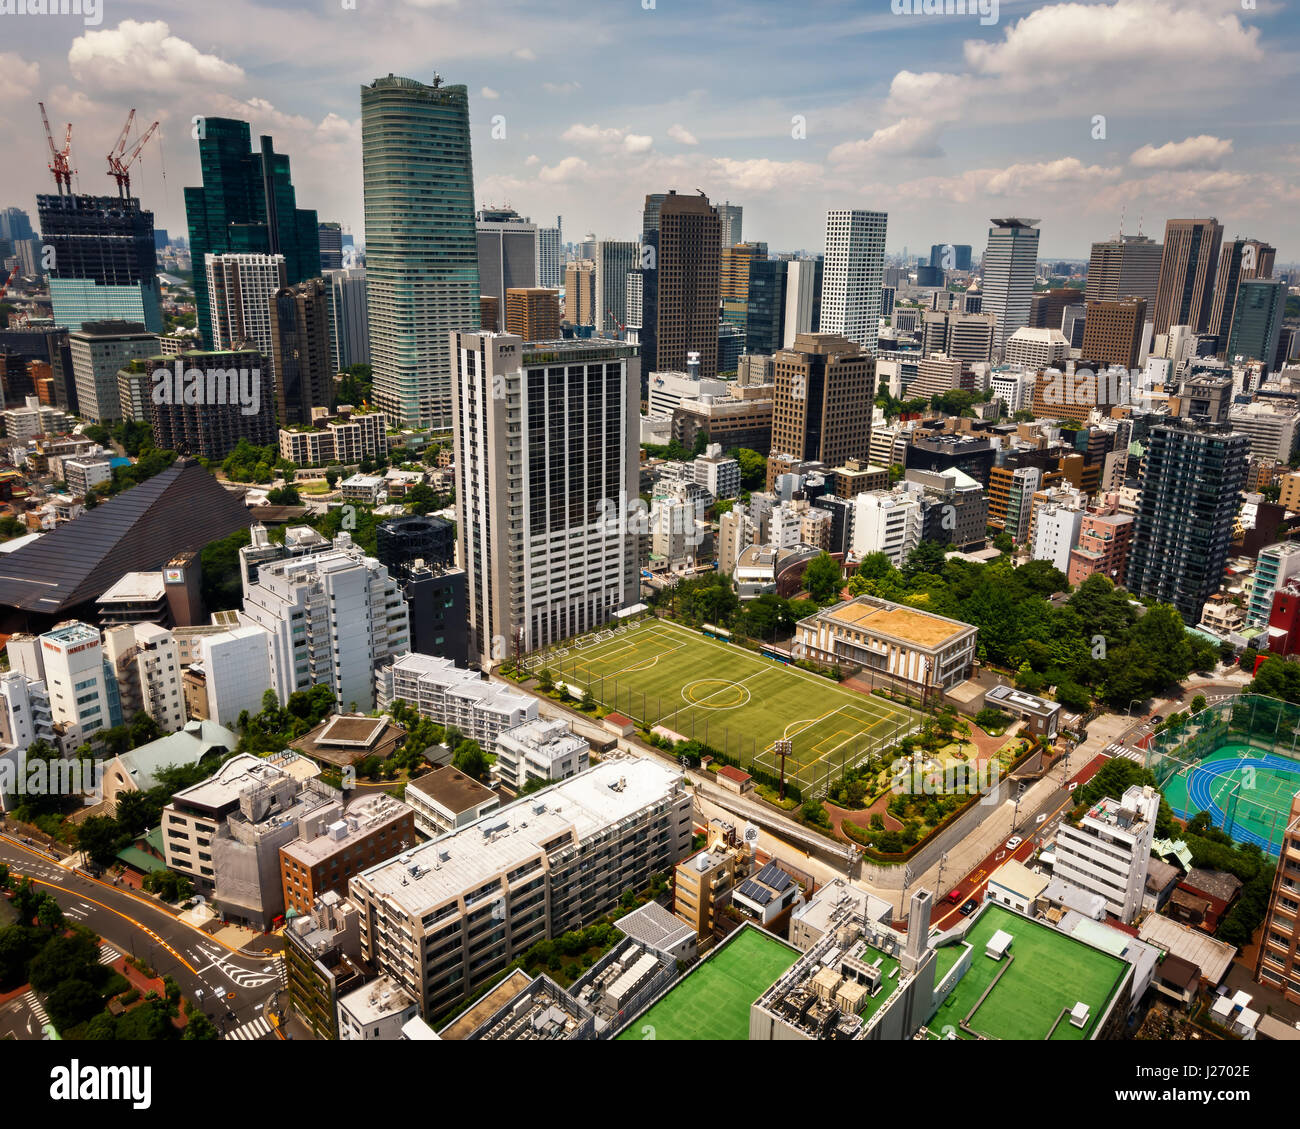 TOKYO, JAPAN - JUNE 10: View at modern skyscrapers in Roppongi district in Minato, Tokyo at June 10, 2015. This - Stock Image